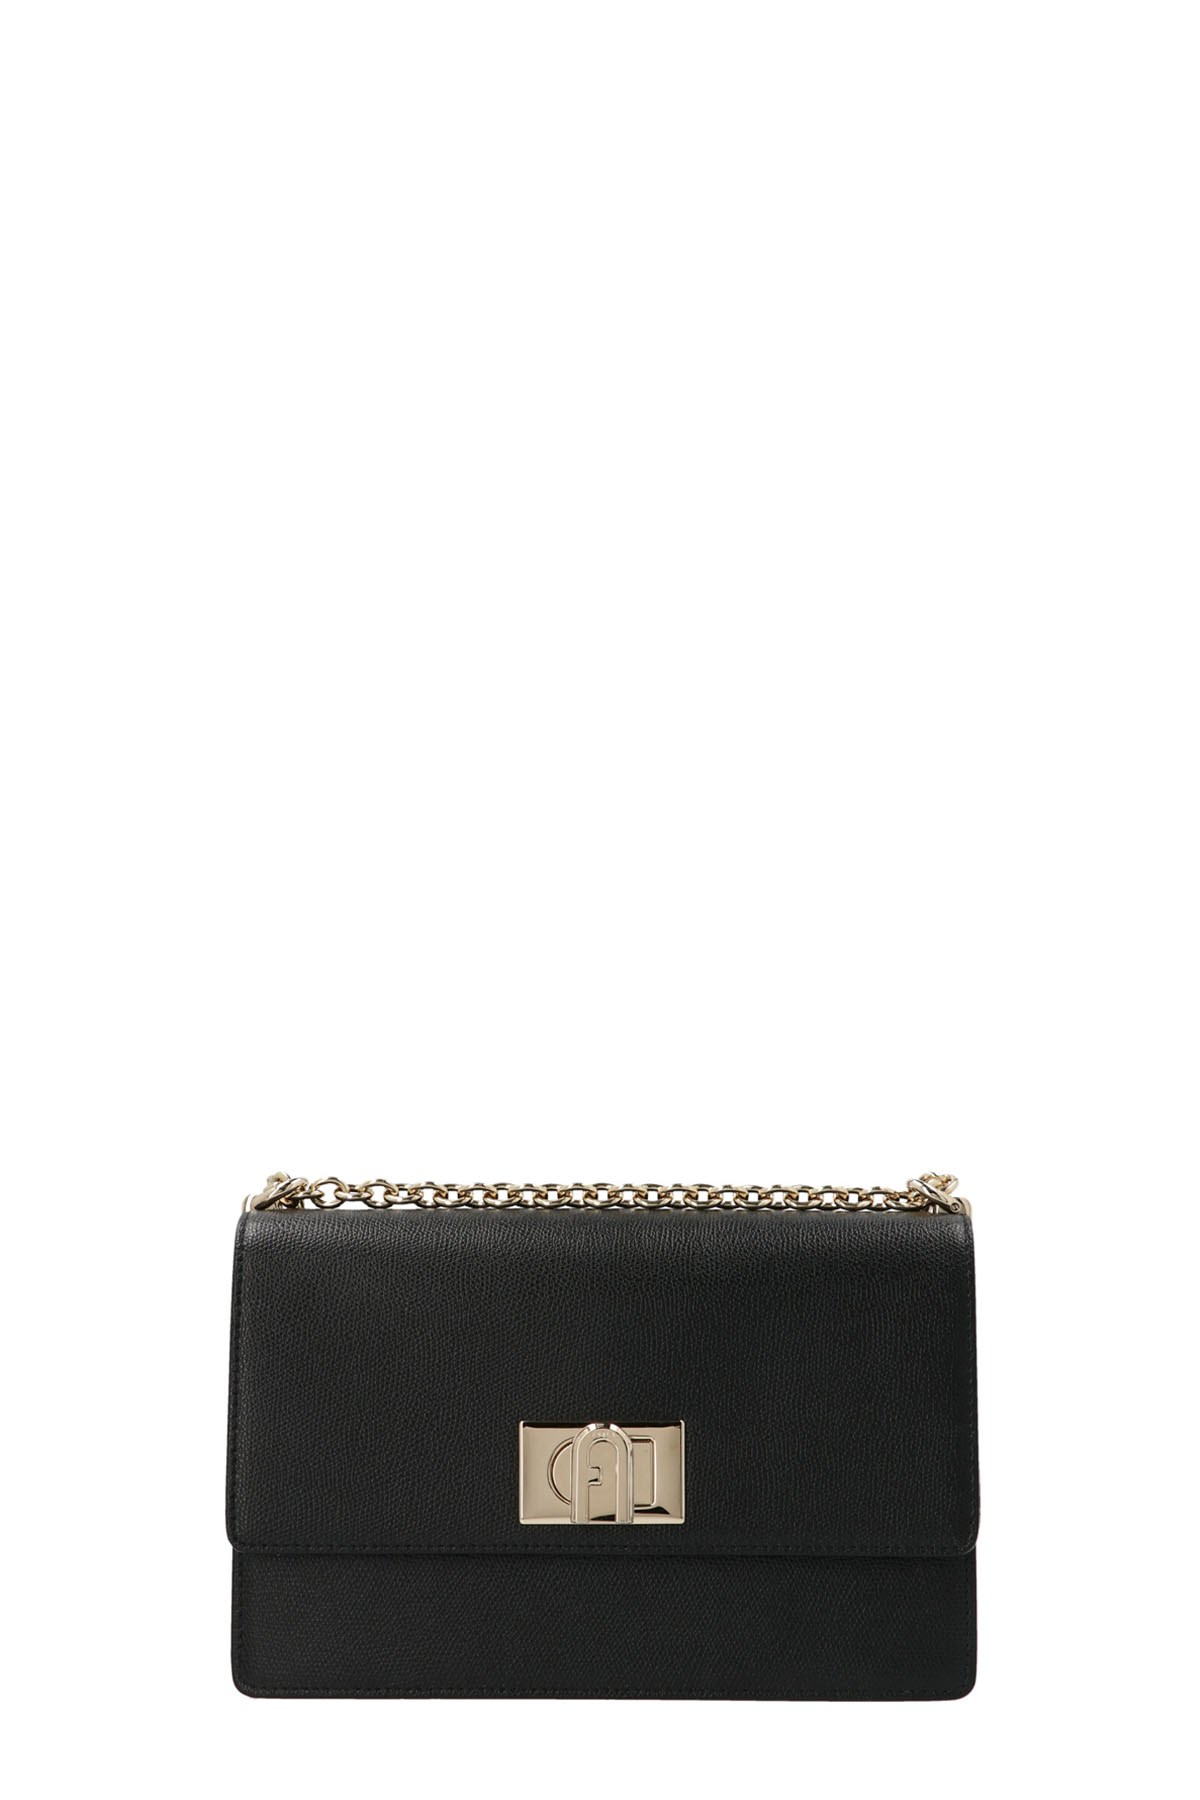 FURLA 1927 S' Crossbody Bag from FURLA